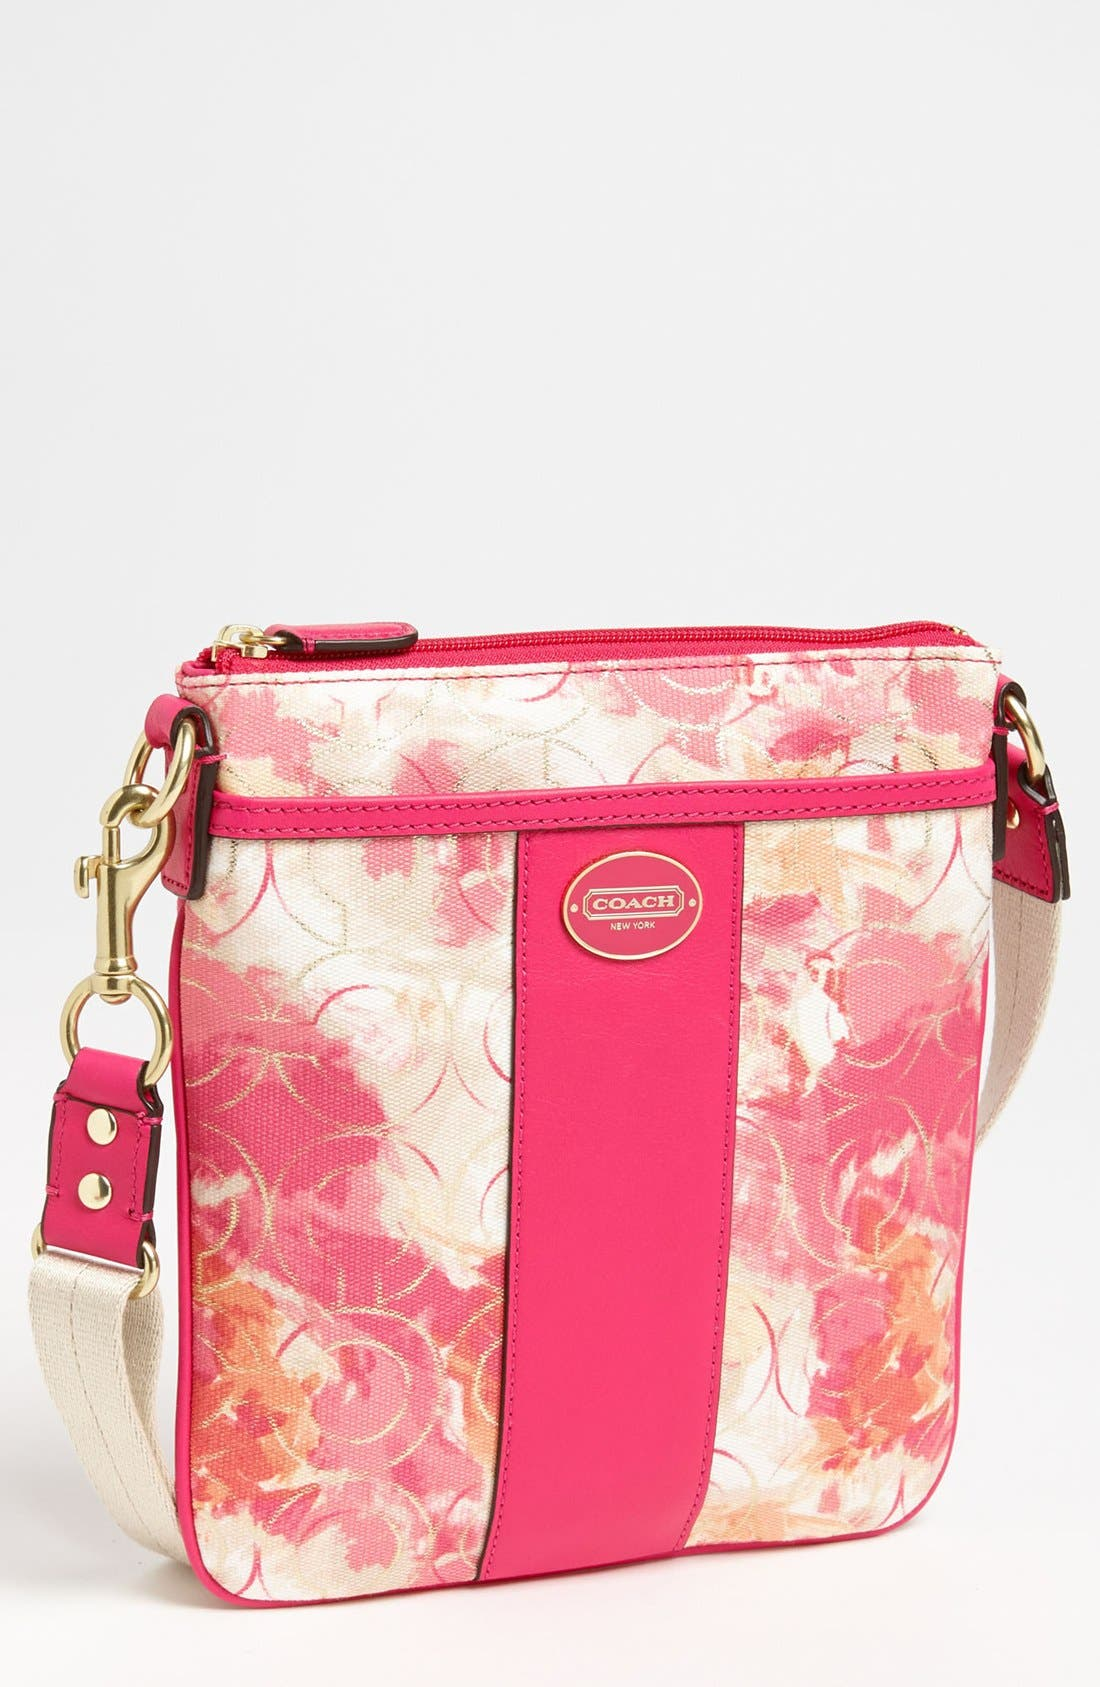 Alternate Image 1 Selected - COACH 'Swingpack' Floral Print Crossbody Bag